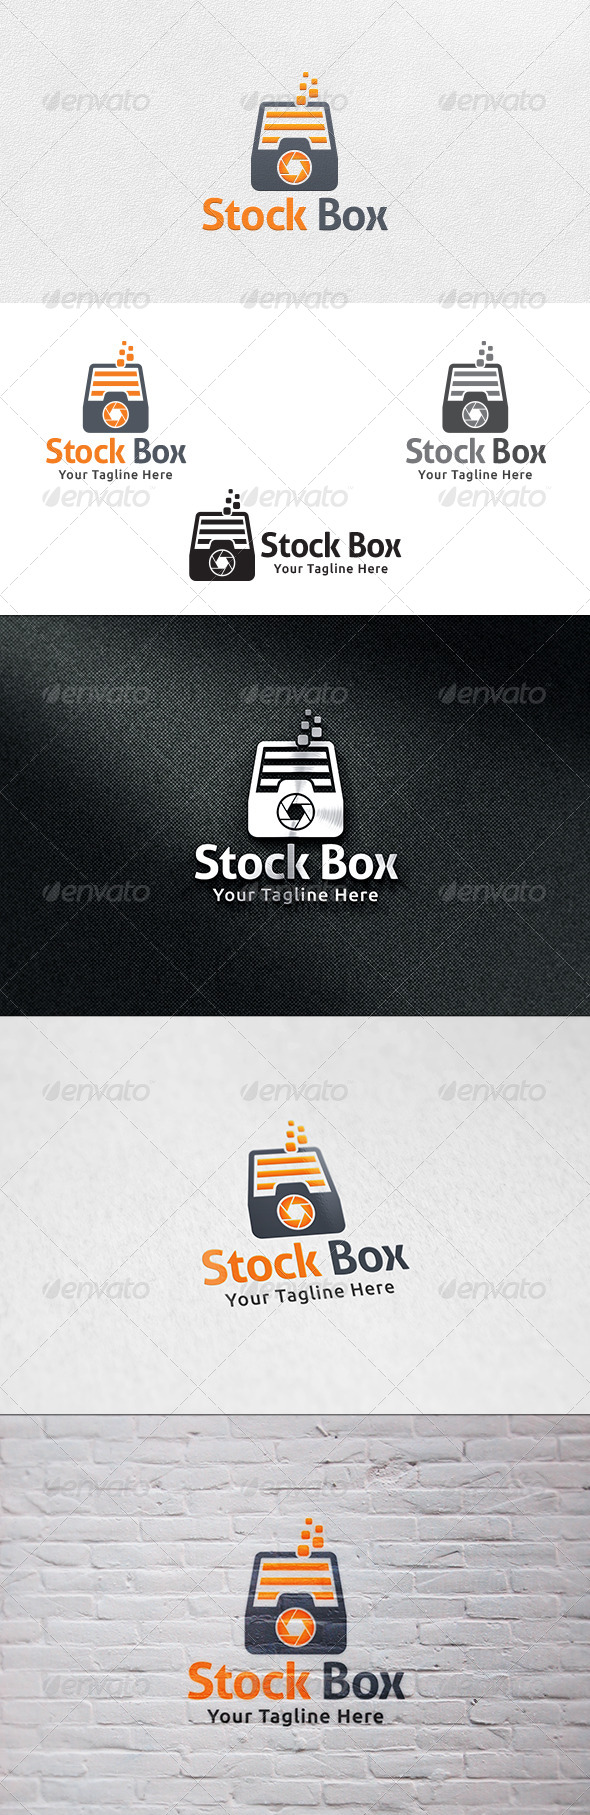 Stock Box - Logo Template - Objects Logo Templates